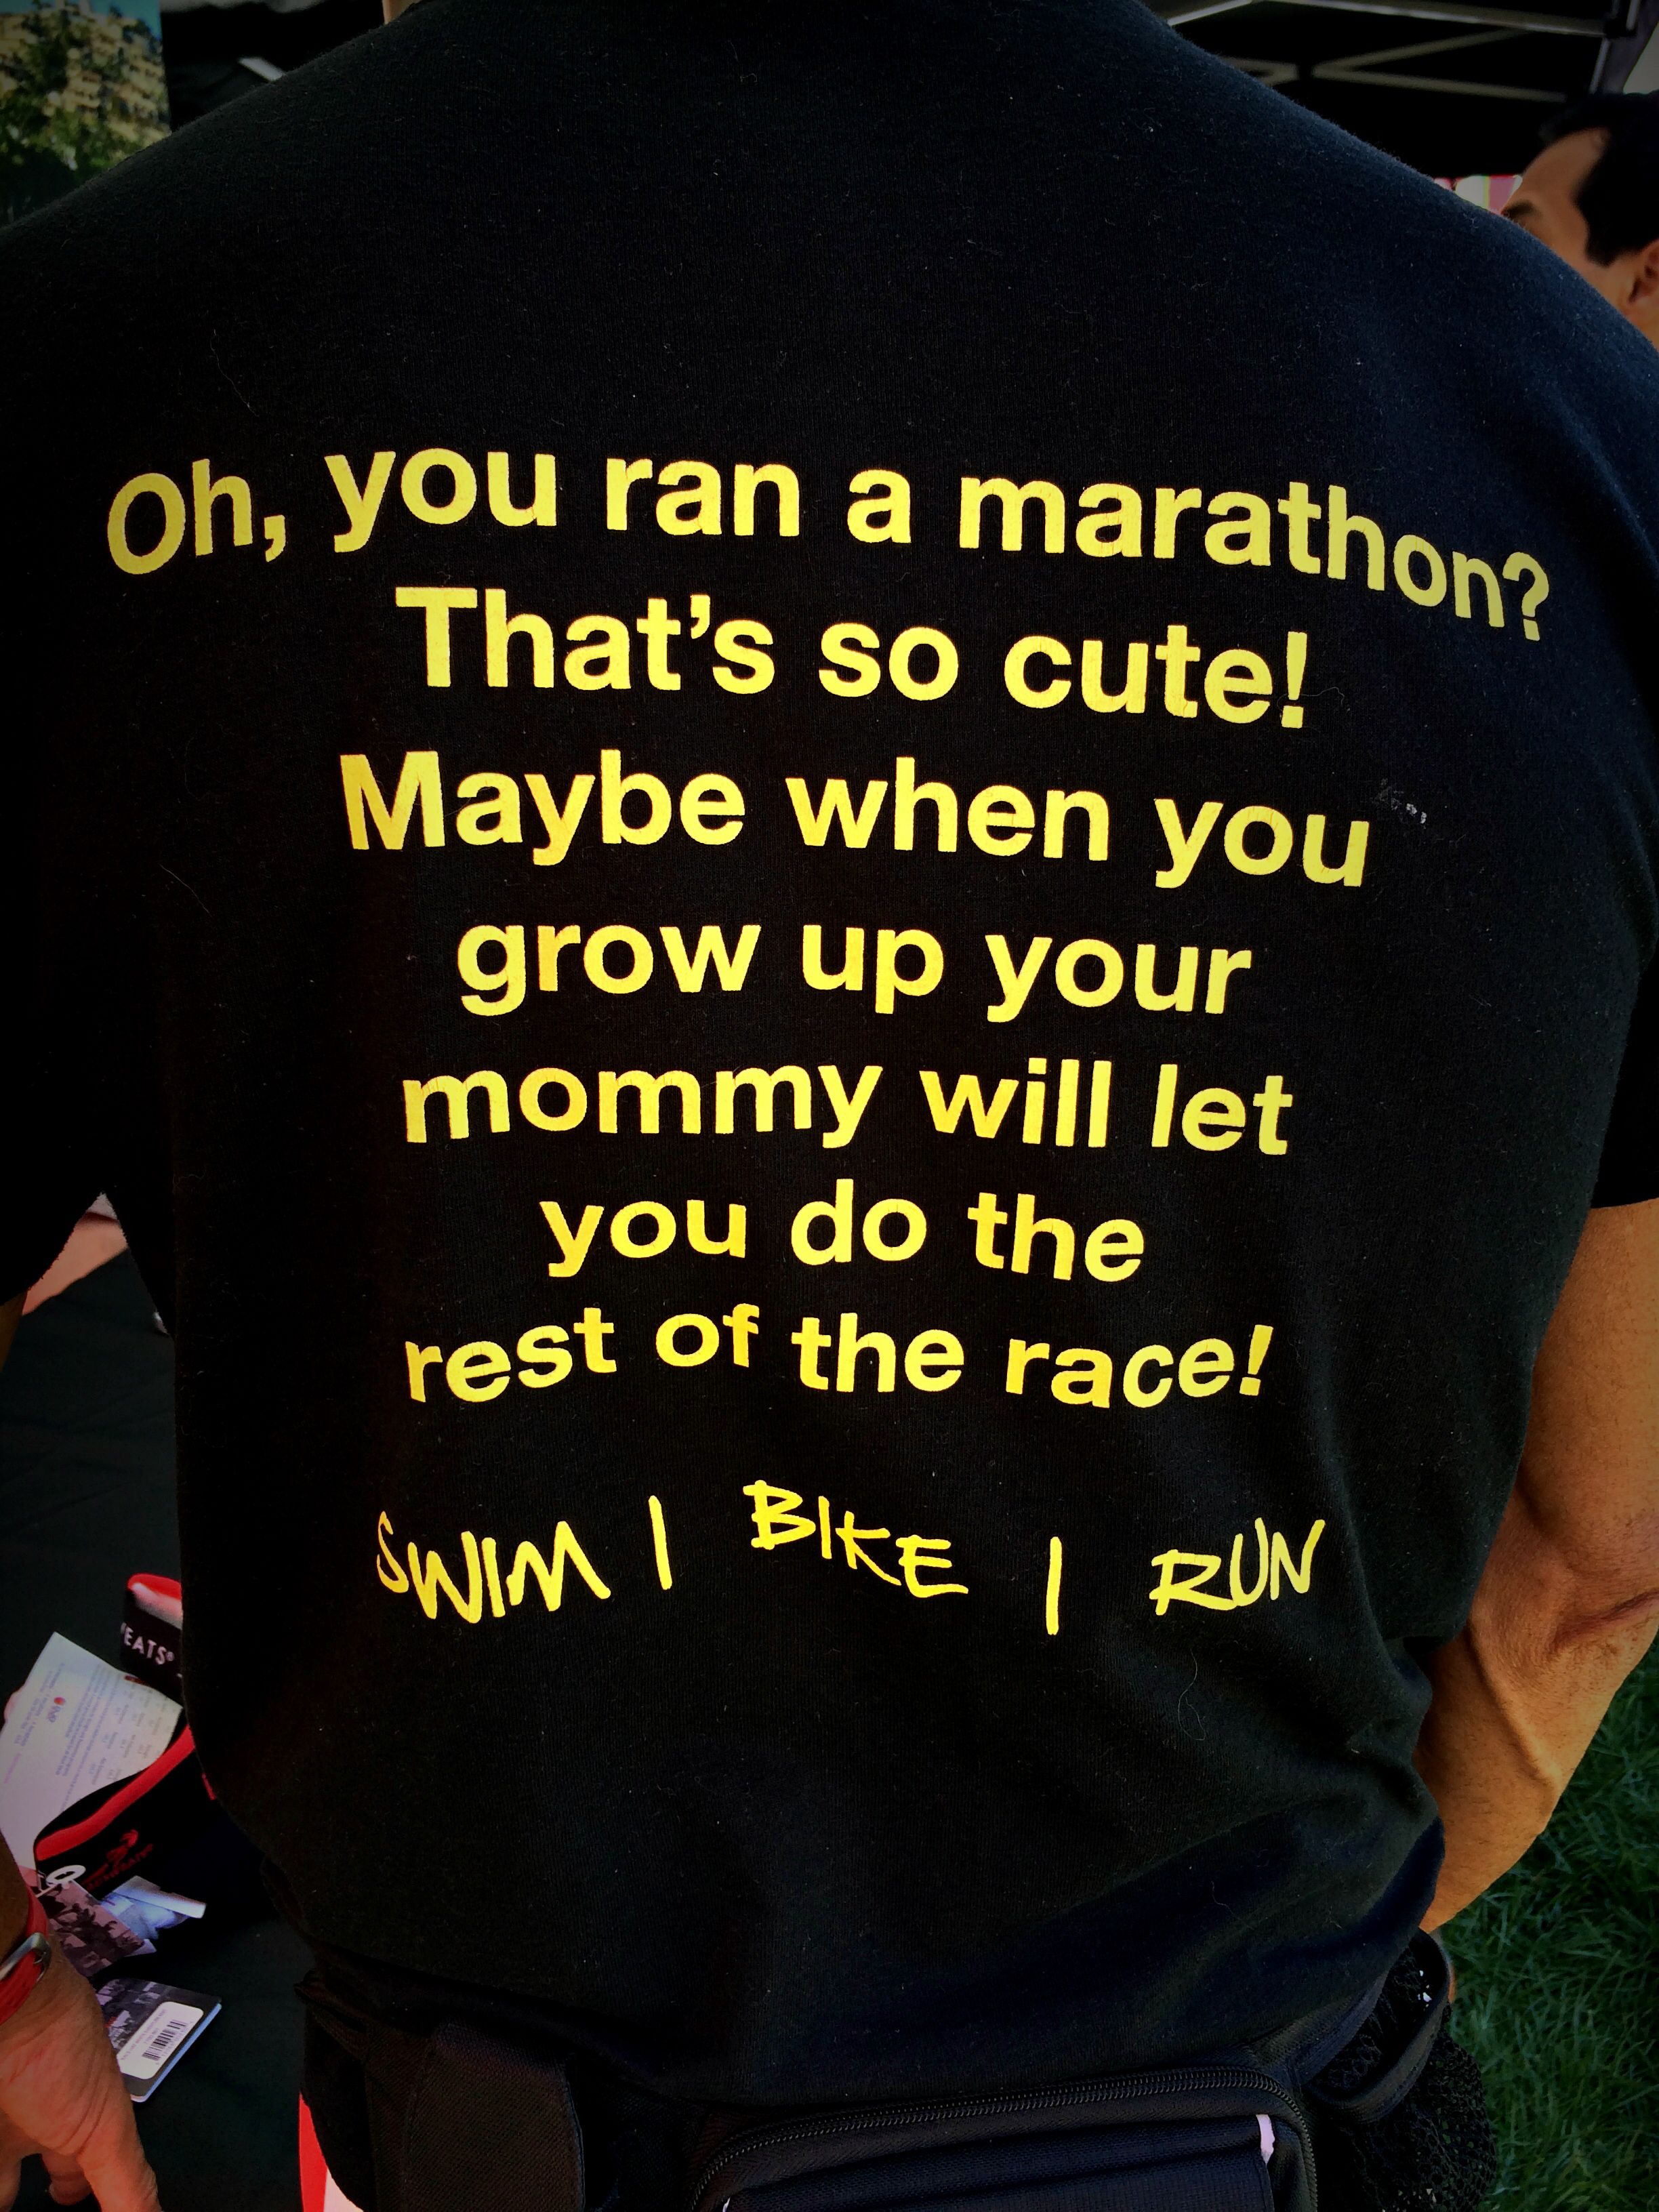 a1714beb Some day I will run a marathon and then do a full ironman then get this  shirt HAHAH More